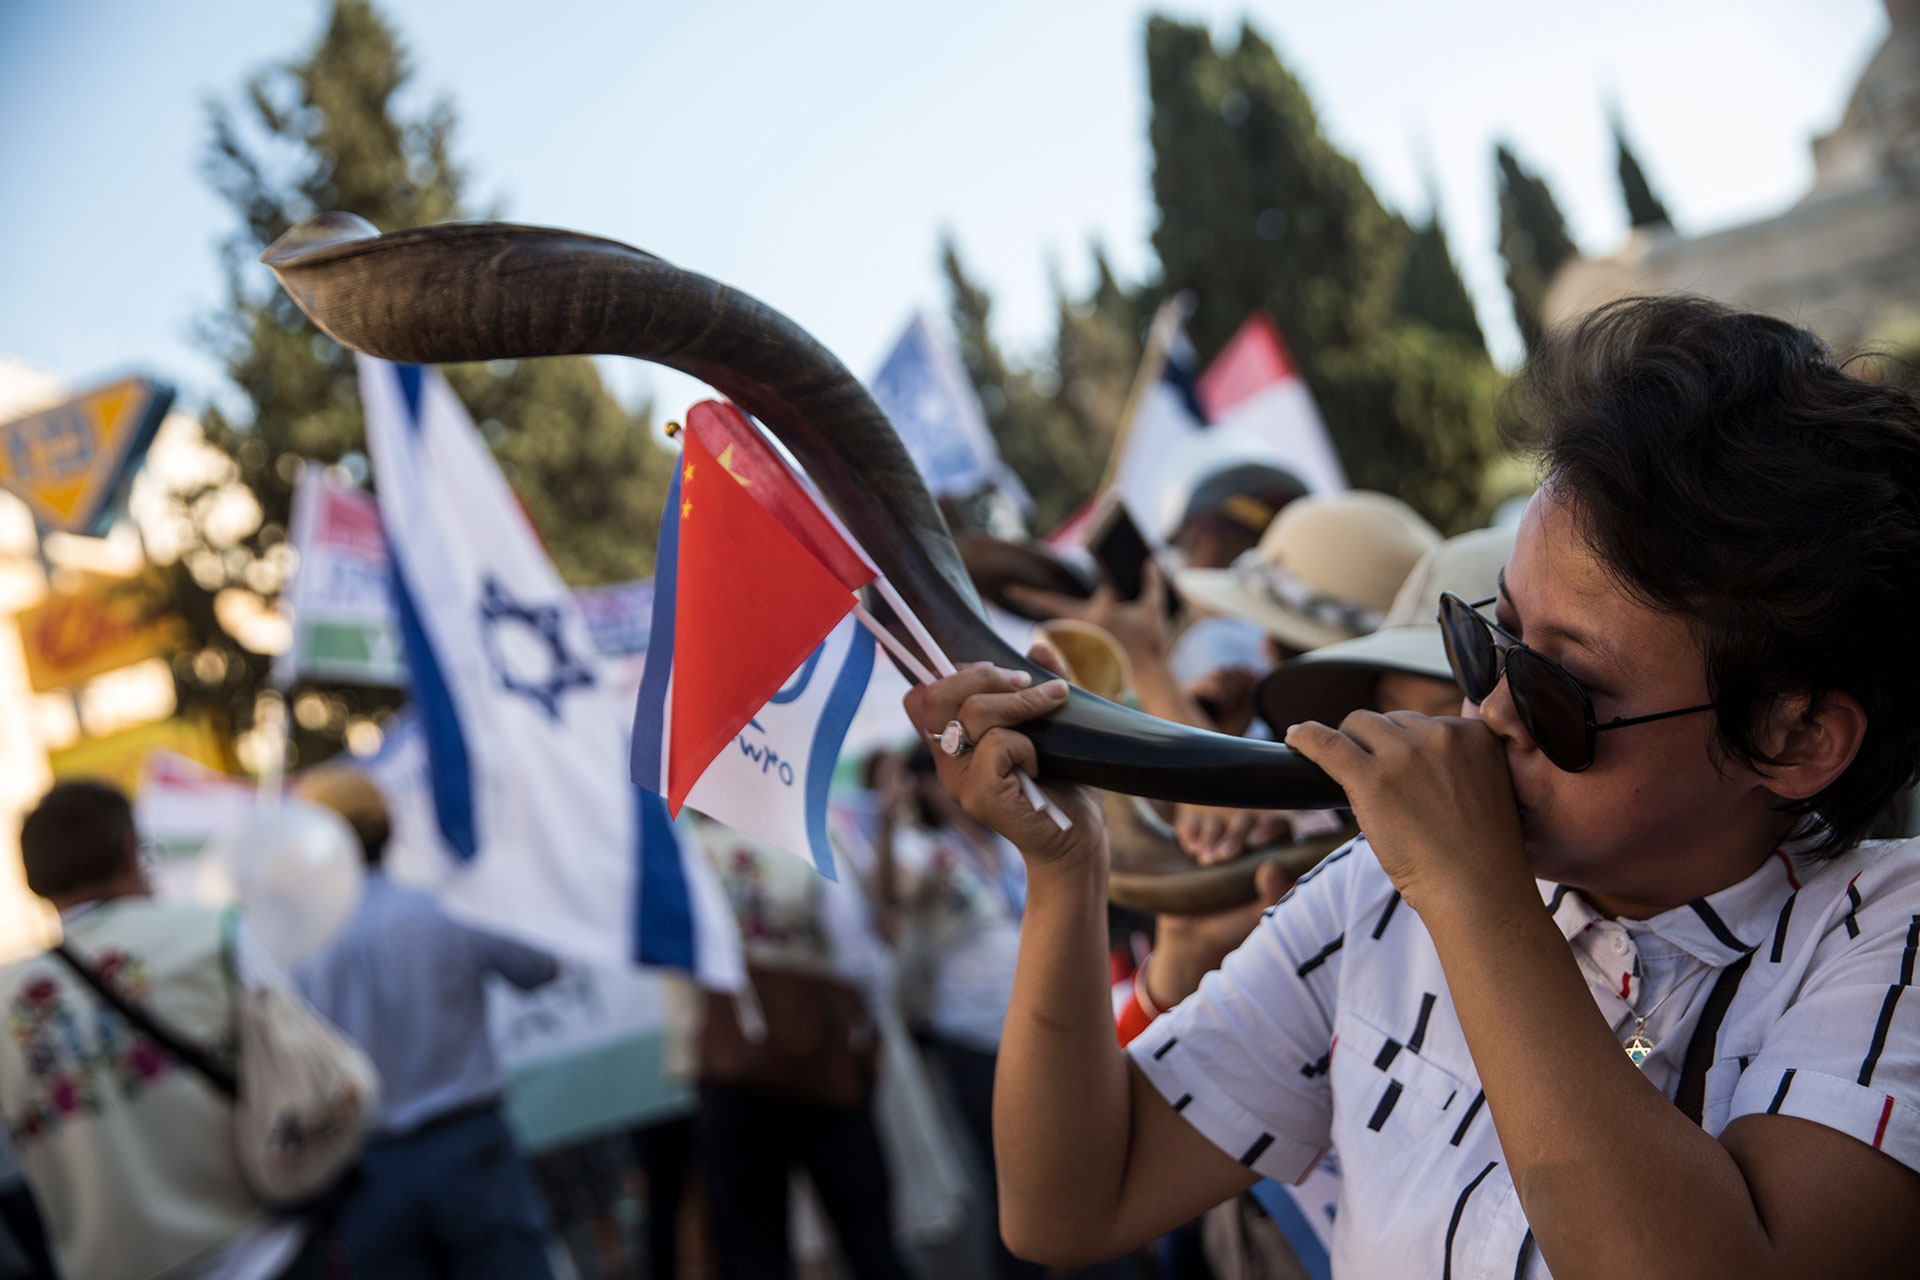 A Christian pilgrim from China blows a Shofar during a parade in Jerusalem on September 27,2018. Thousands of Christians from around the world participated in the march which was one of the major events of the week long Feast of Tabernacles festival also known as Sukkot. (Photo by Heidi Levine for The GroundTruth Project).